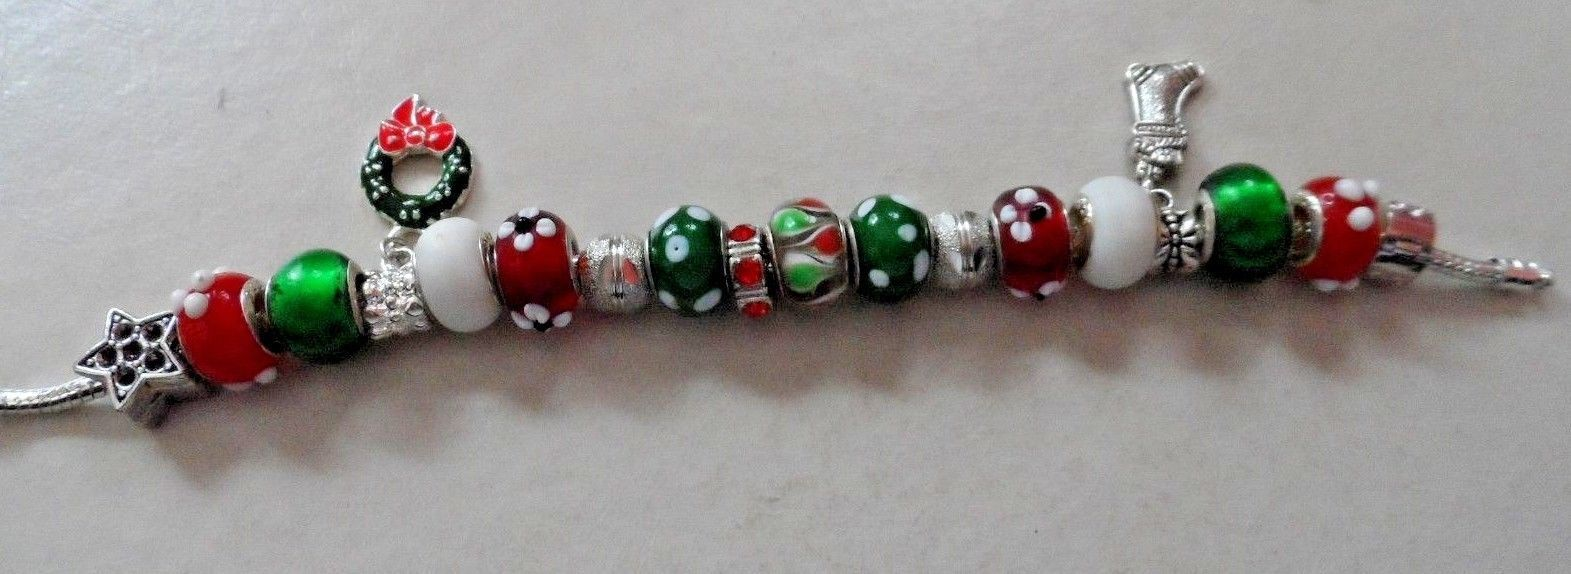 European style red, green and white bead bracelet Christmas holiday theme image 4